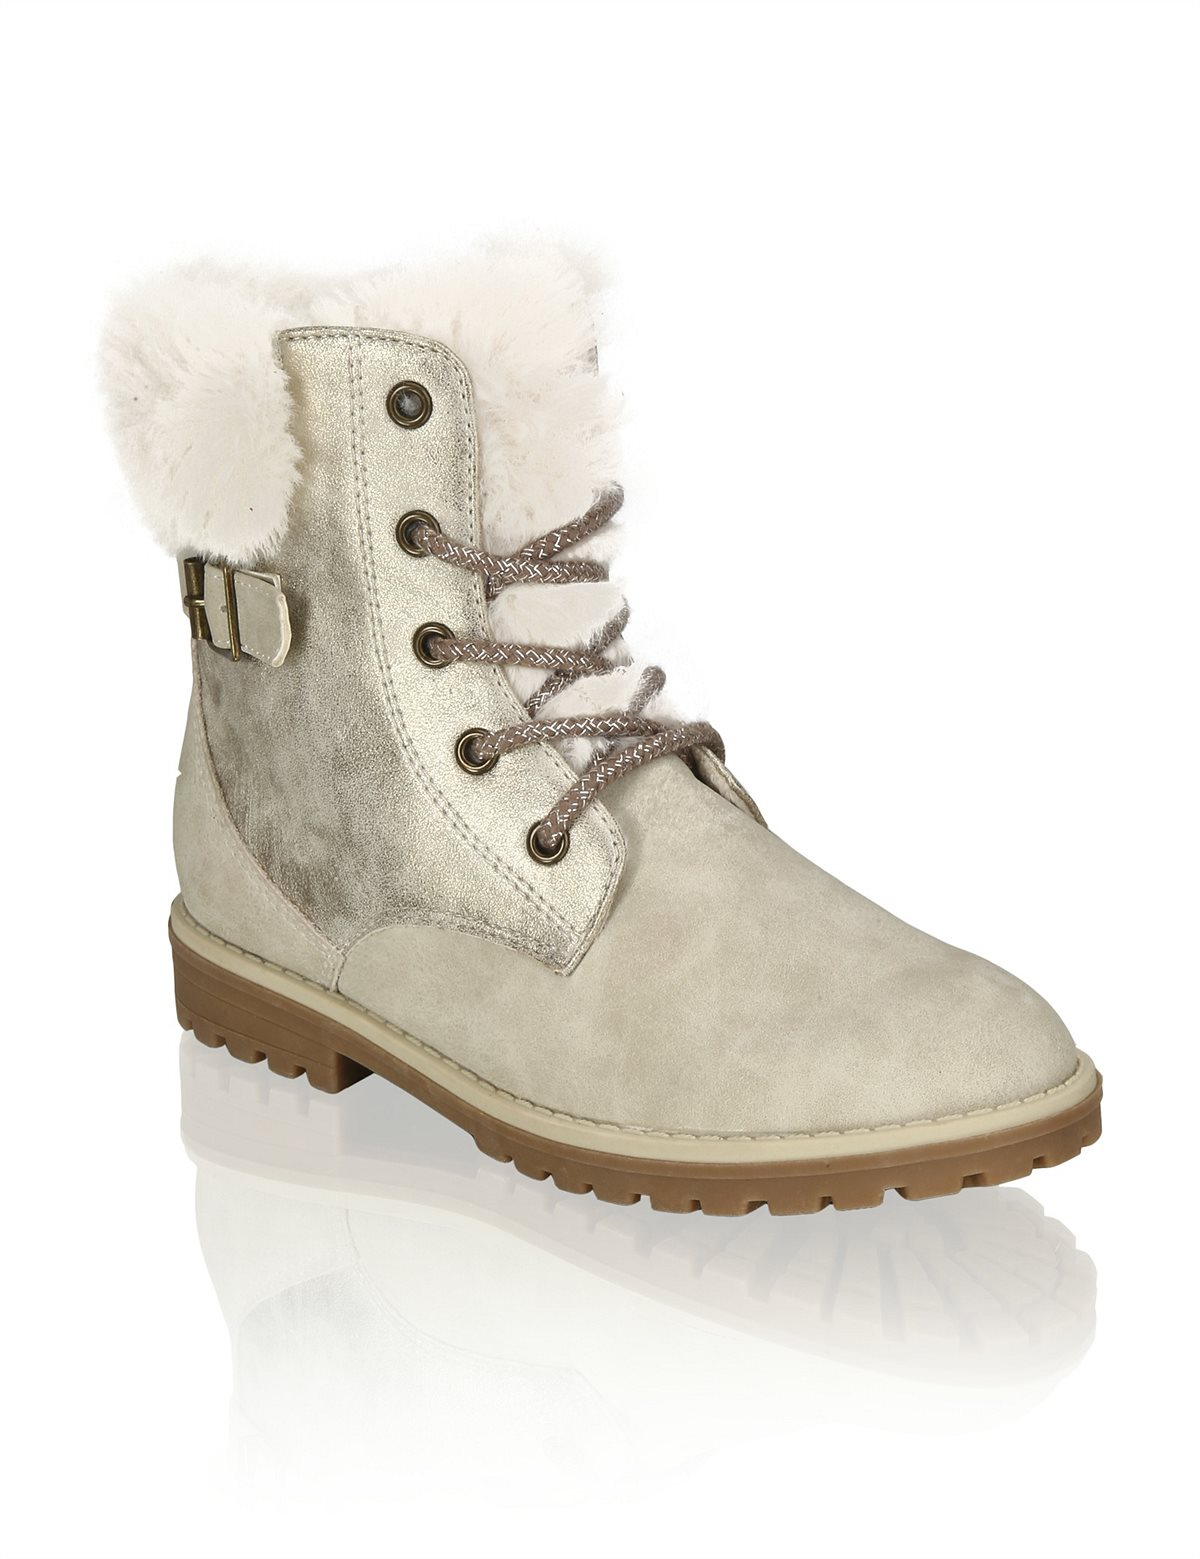 HUMANIC 09 Kids Funky Girls Boot ab EUR 39,95 ab Ende August 3623504725